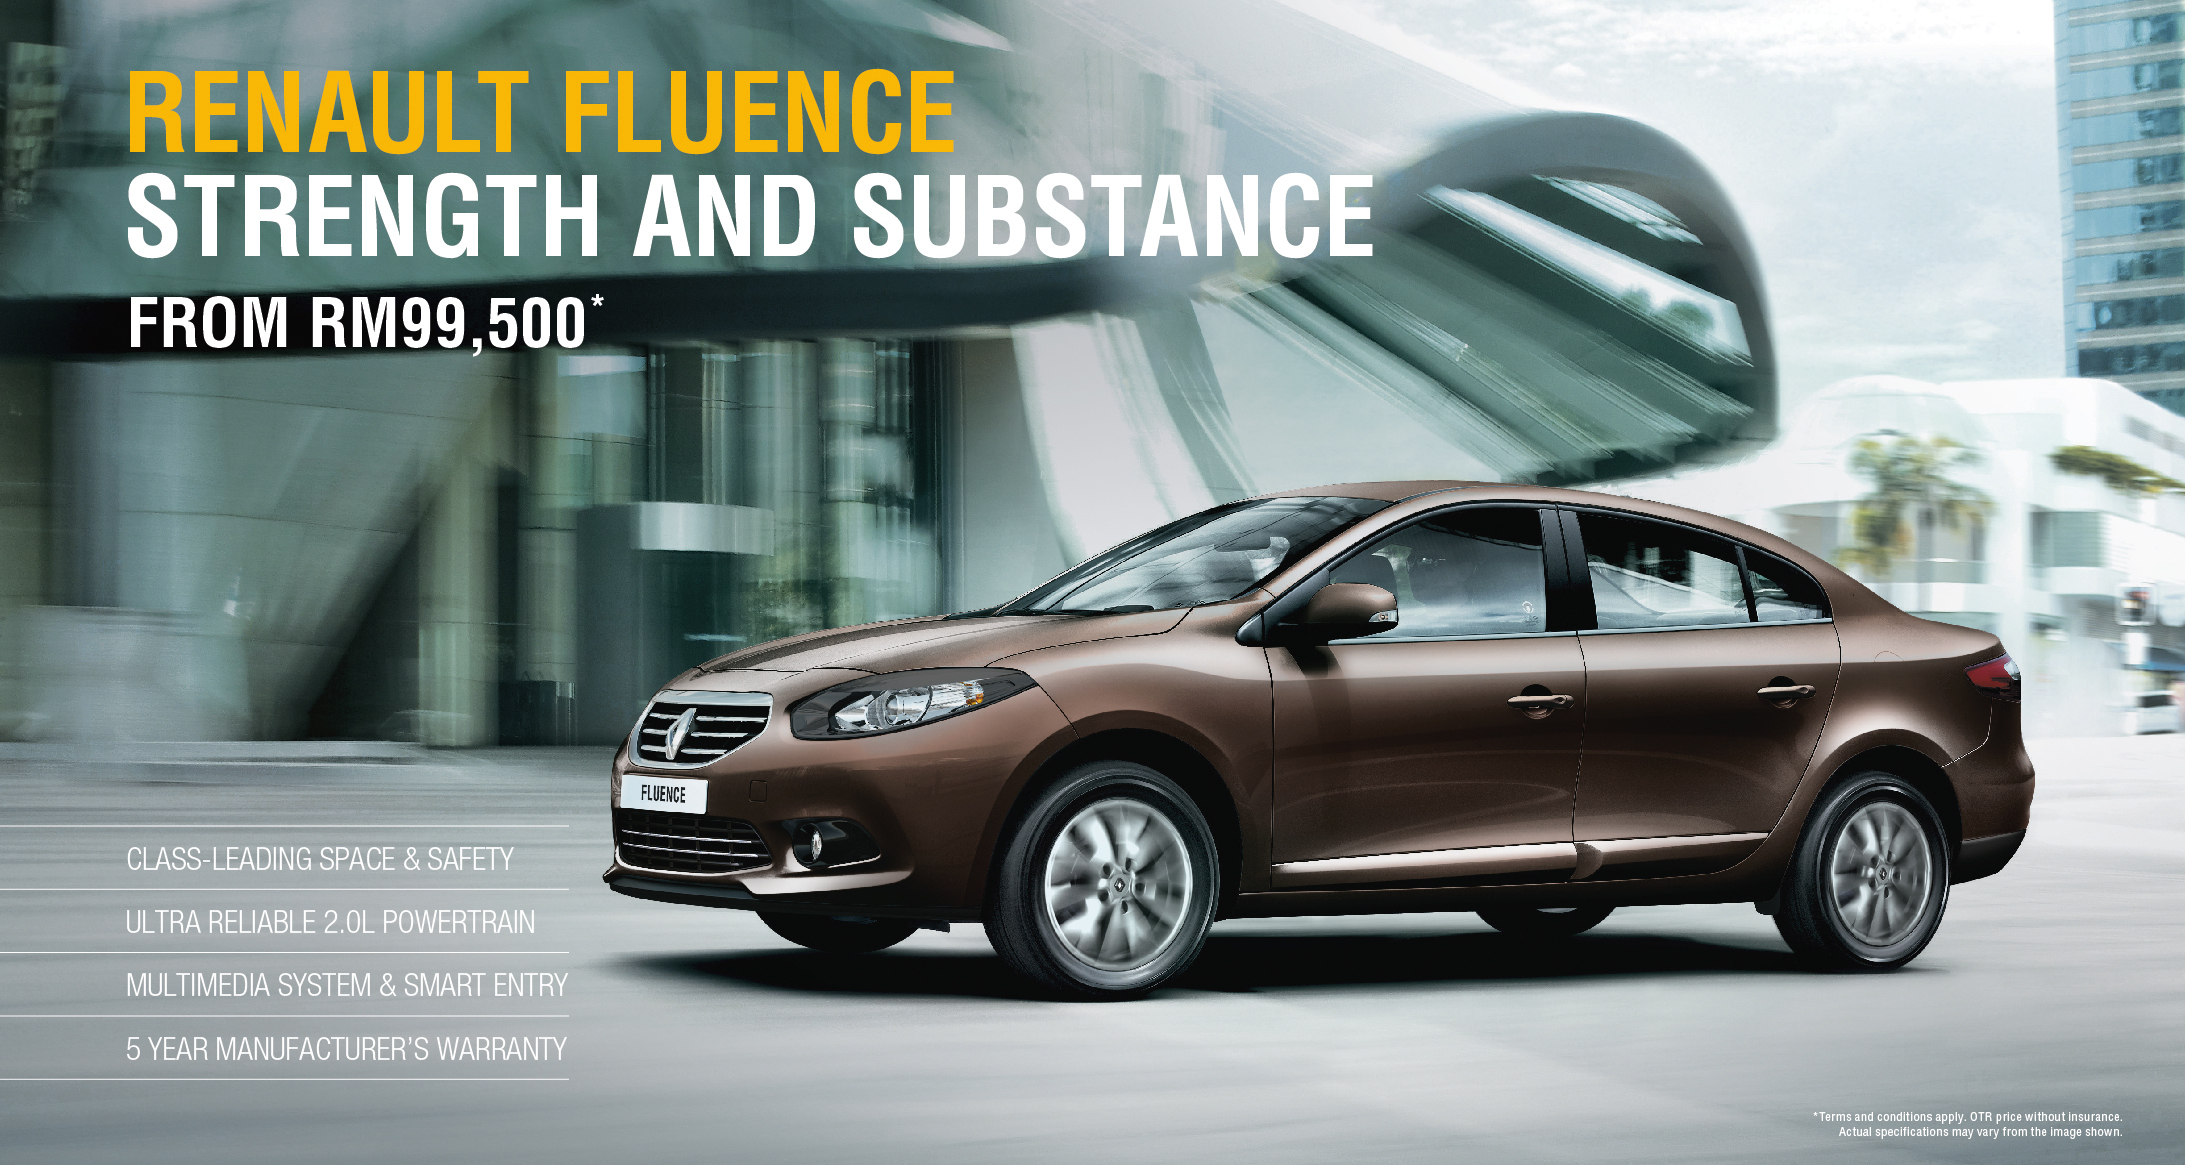 Full Coverage Car Insurance >> AD: New Renault Fluence 2.0L for as low as RM99,500!